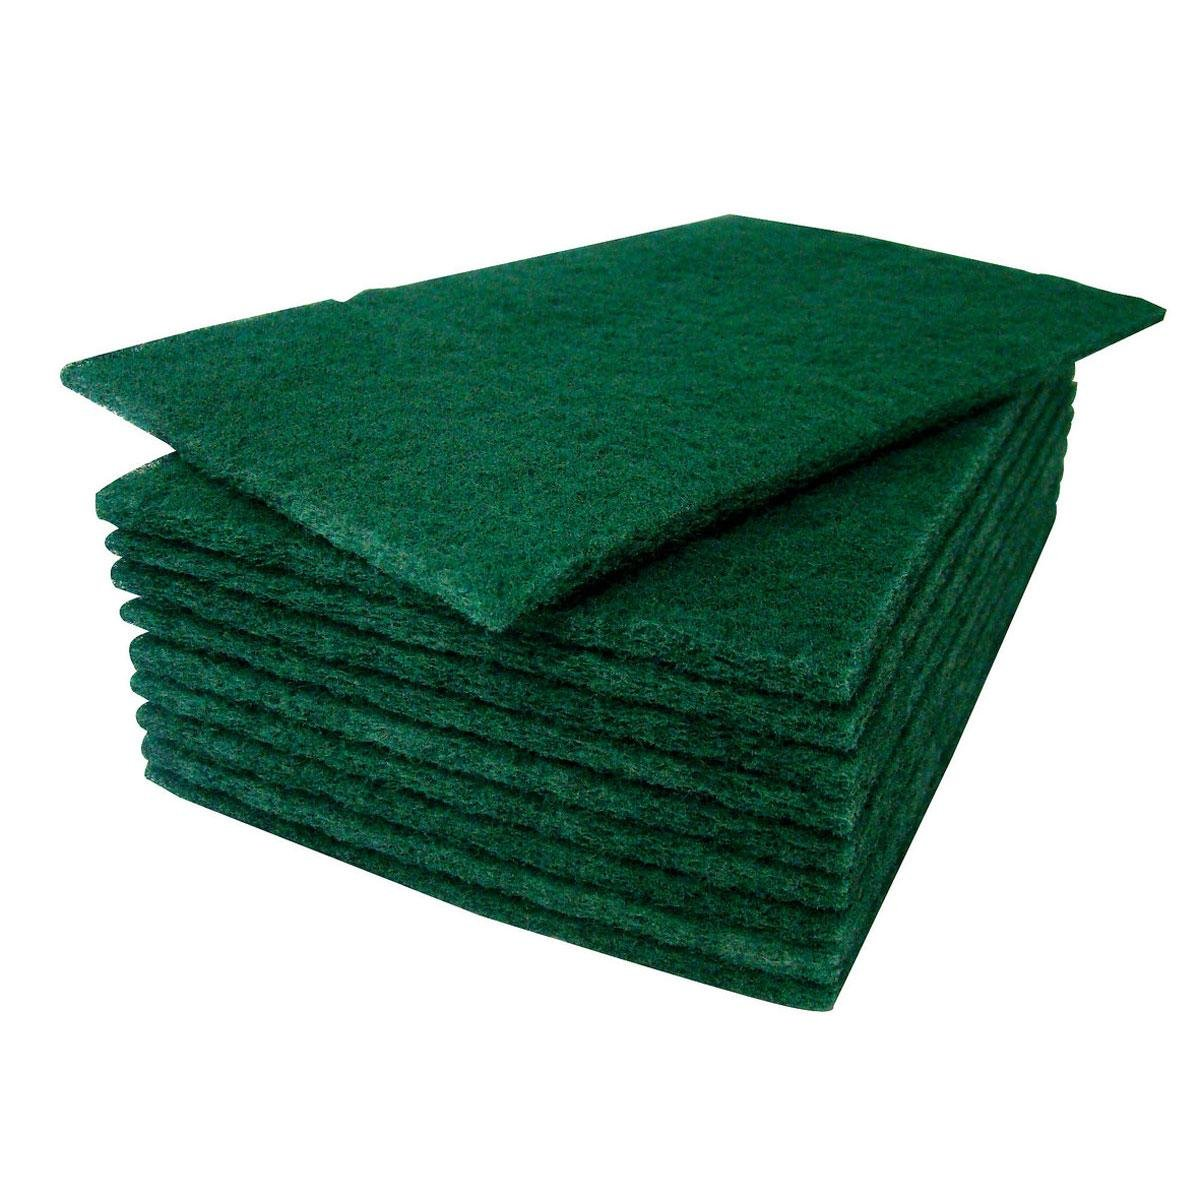 3M RB6B General Purpose Scouring Pad - Pack of 10